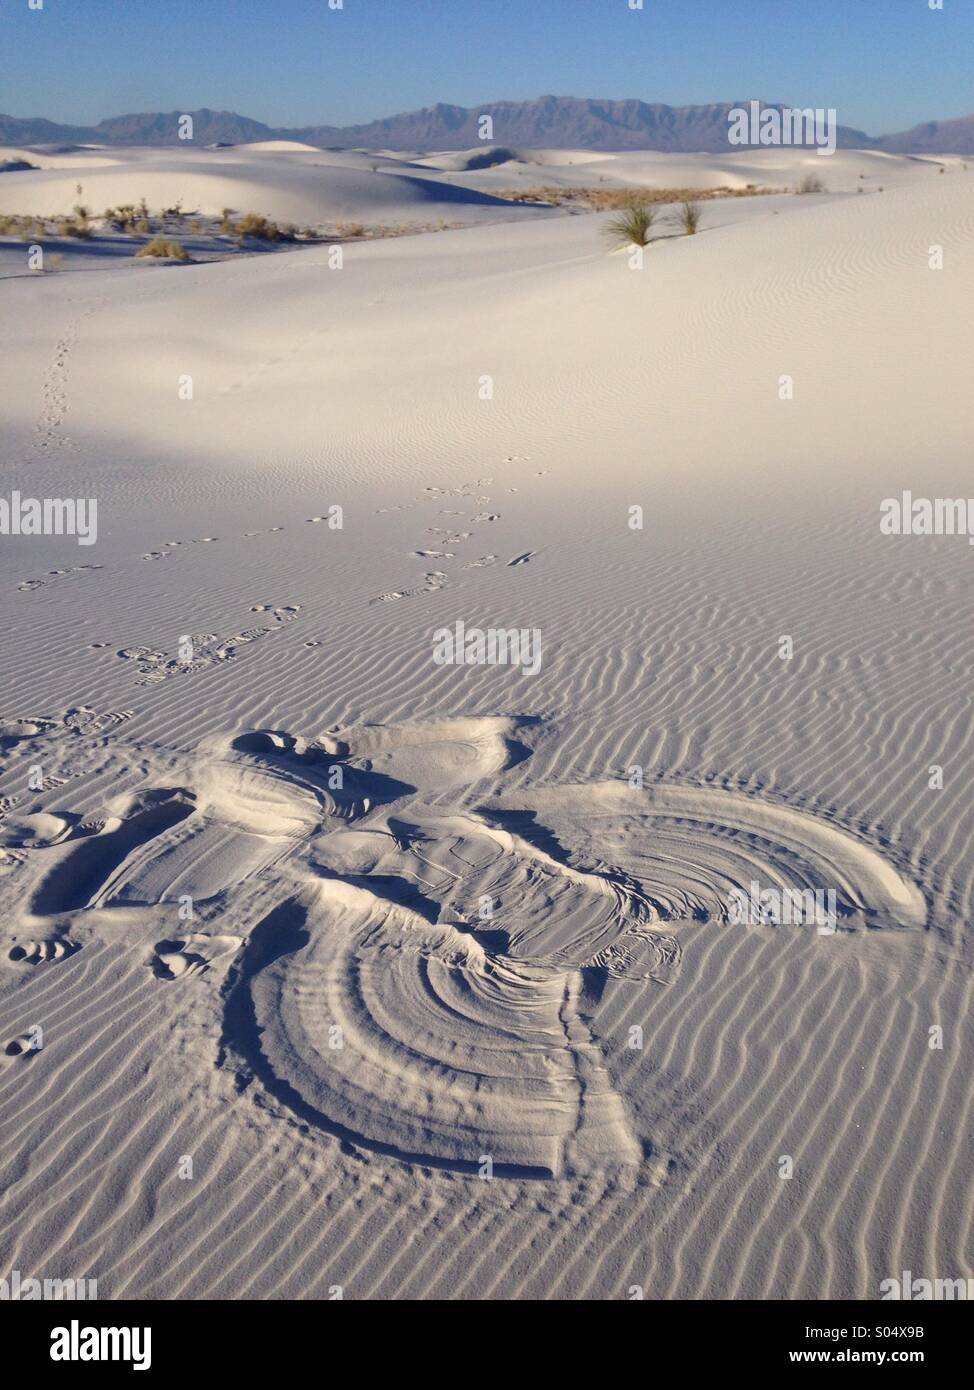 A 'snow' angel in the sand at White Sands National Monument, New Mexico, USA. - Stock Image